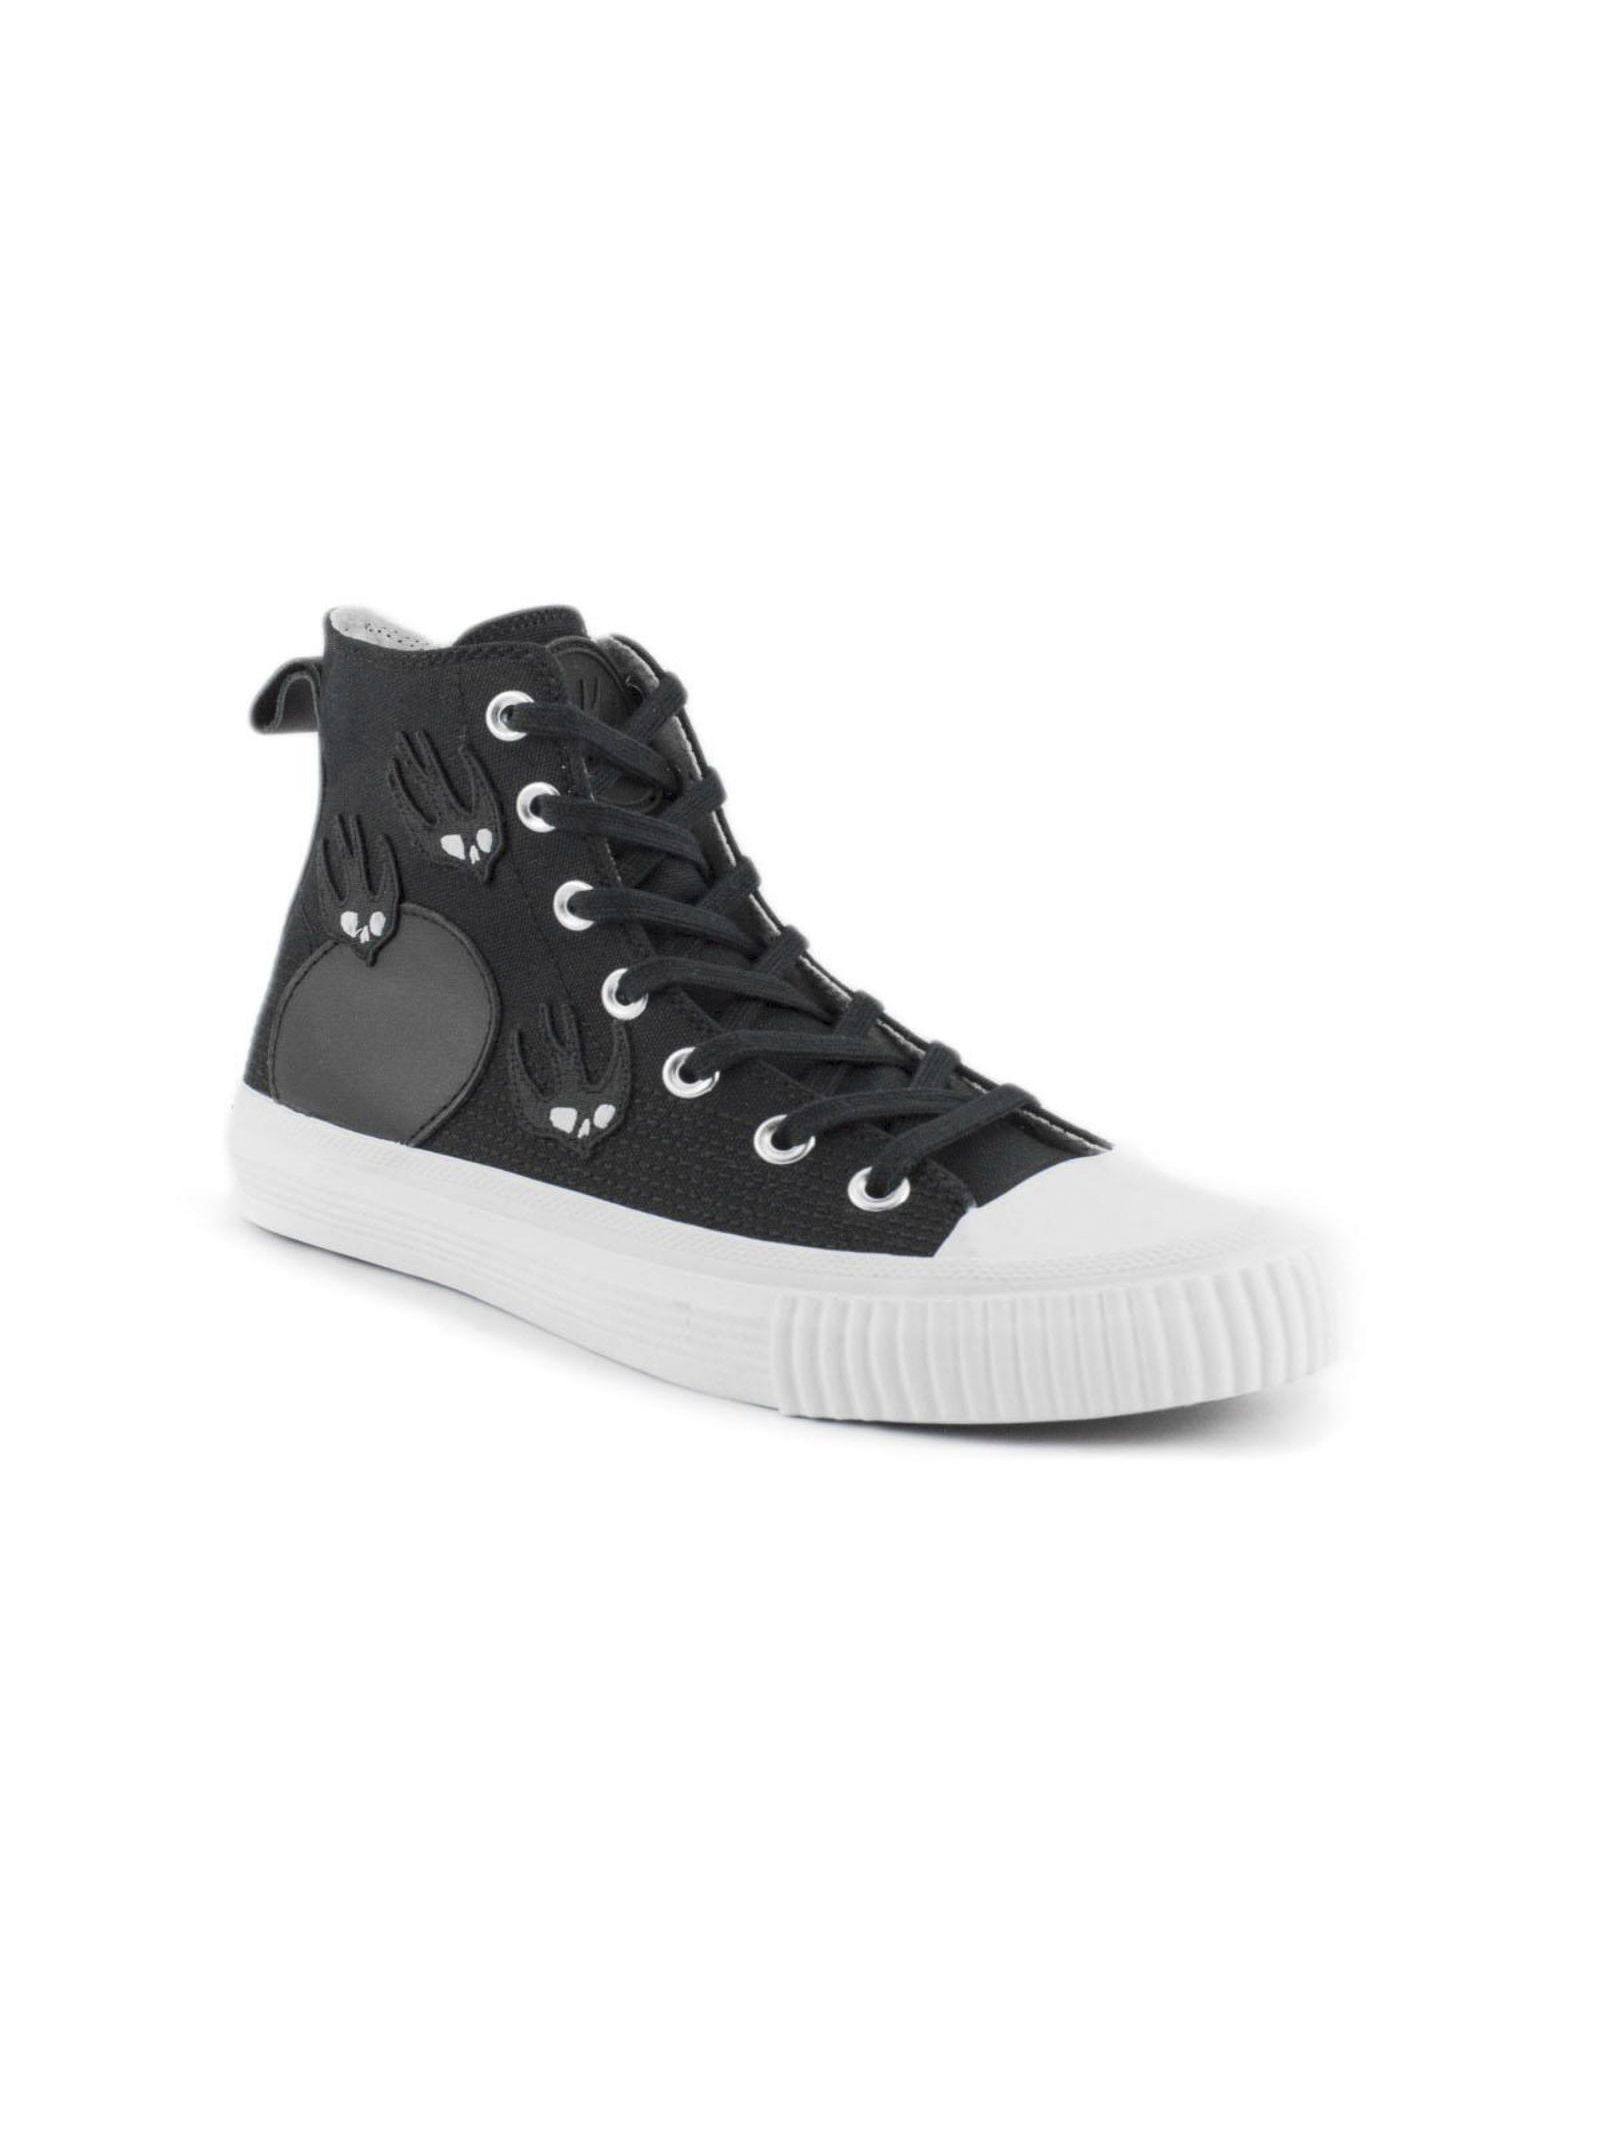 Alexander McQueen Black Leather And Cotton High-top Sneakers Reliable Cheap Price Free Shipping Sneakernews oafKKRO7